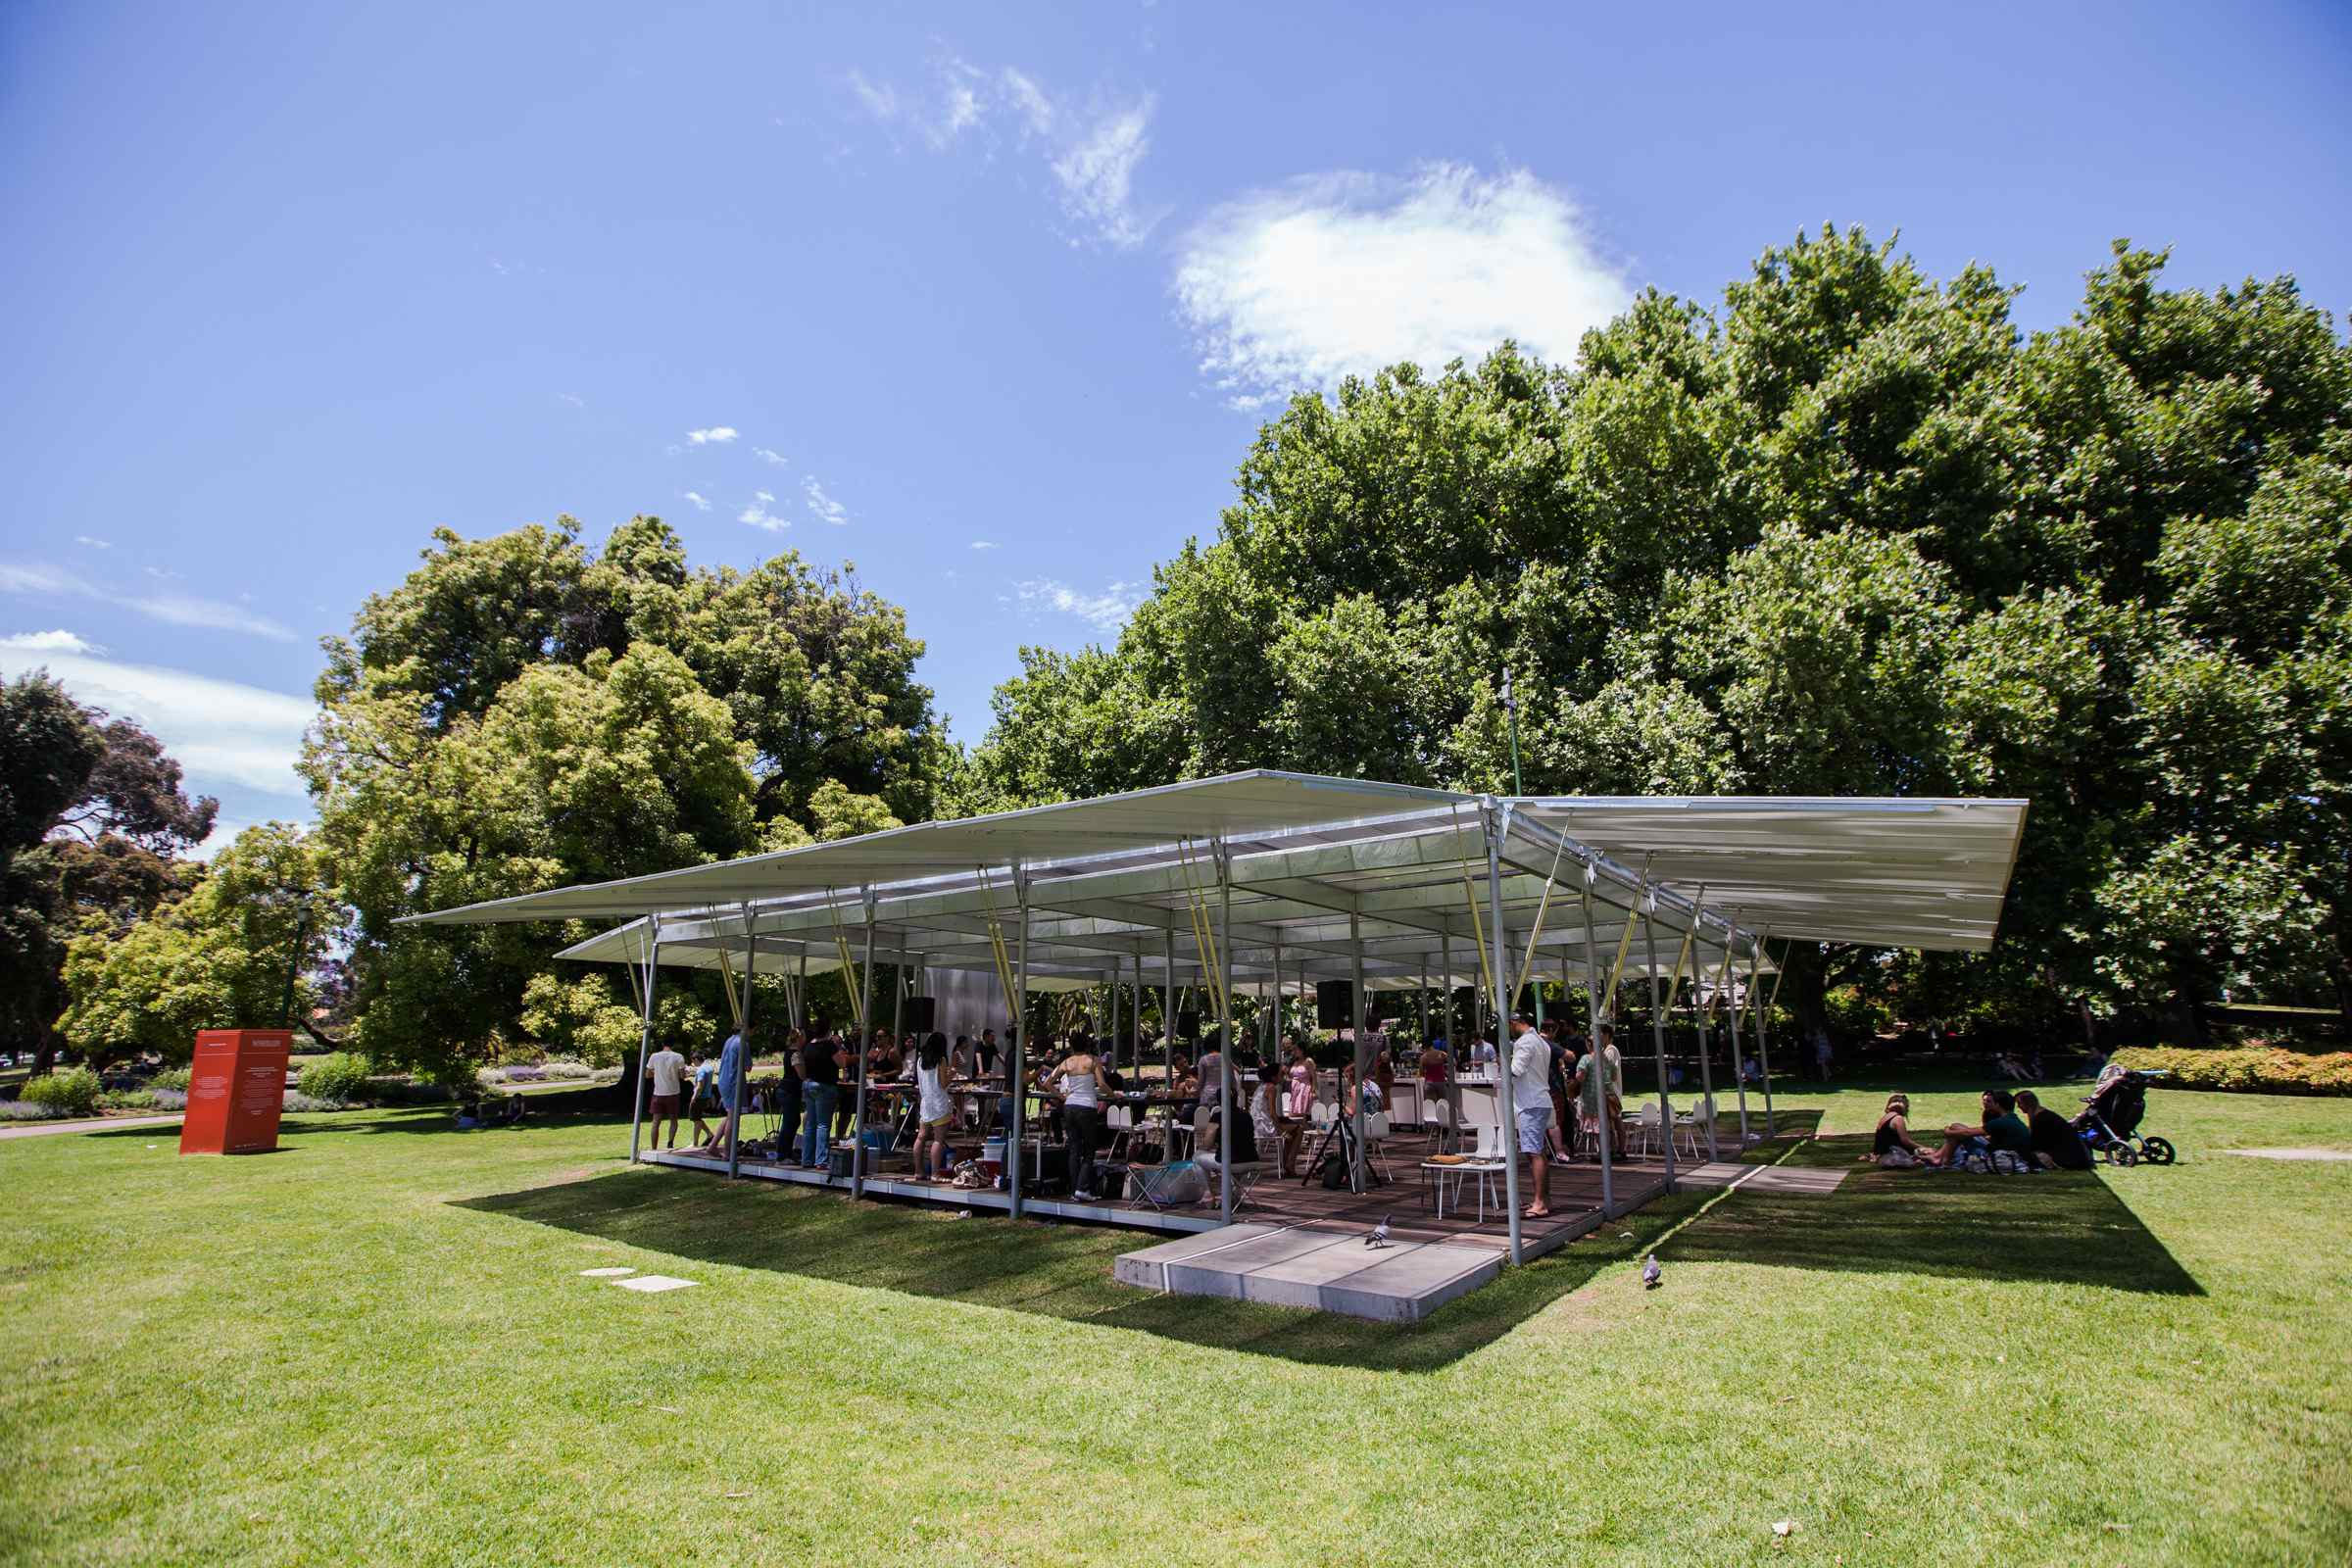 Summer at the MPavilion